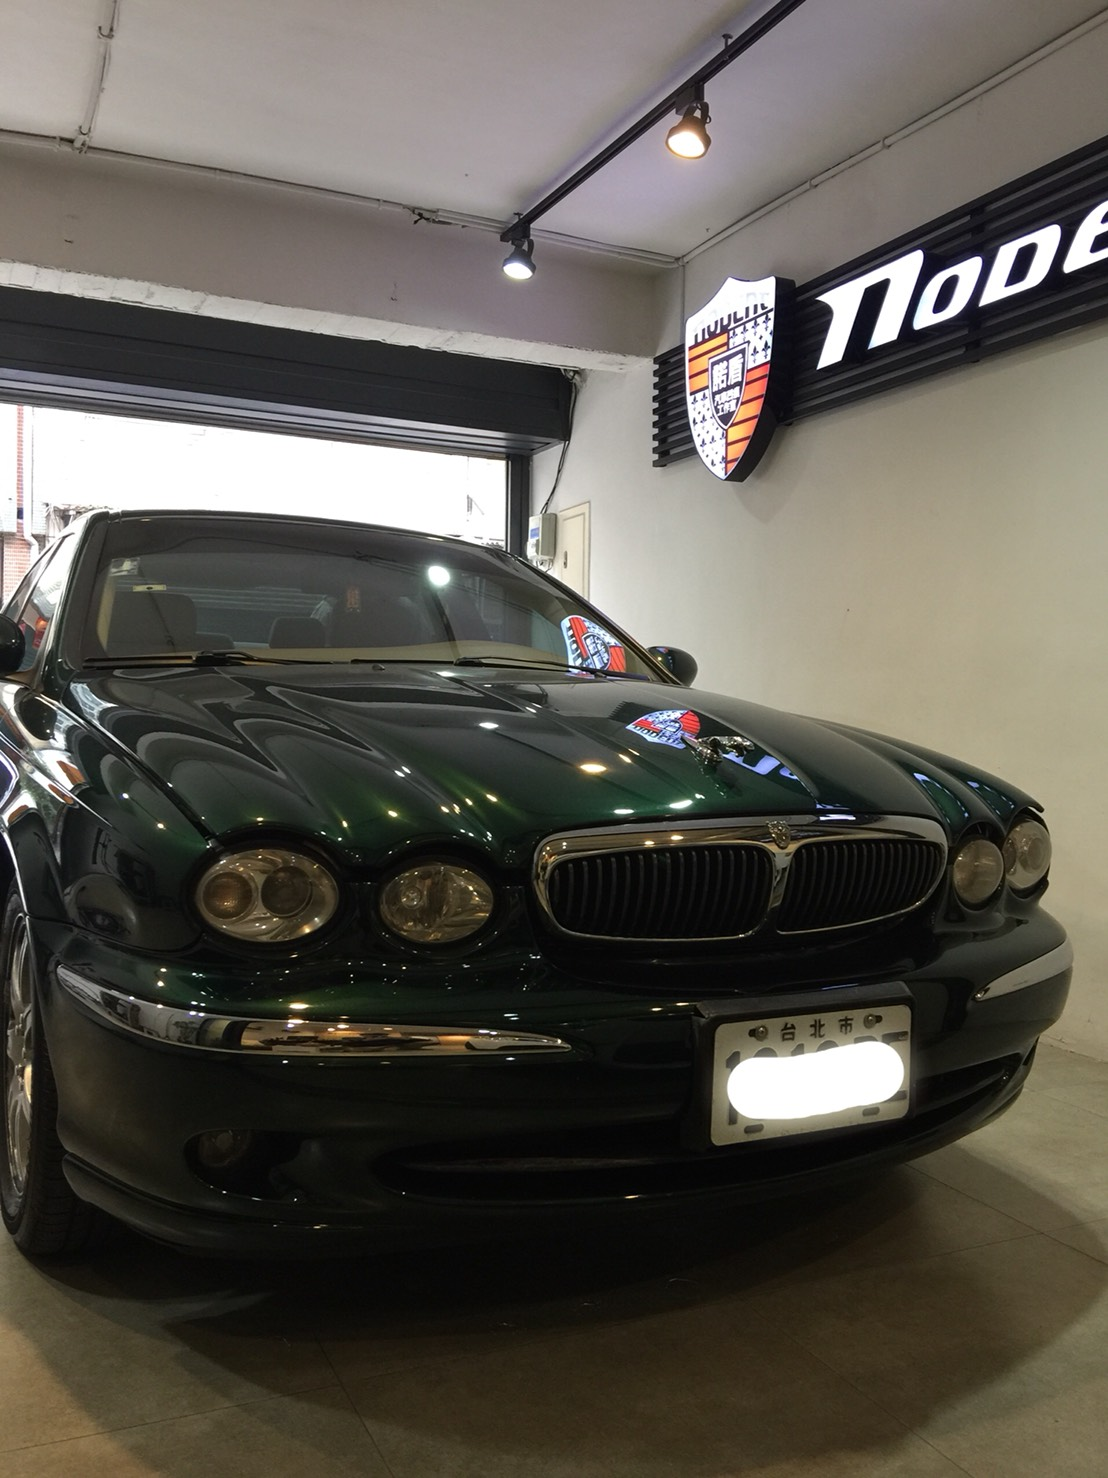 Jaguar X-Type 葉子鈑凹痕修復。